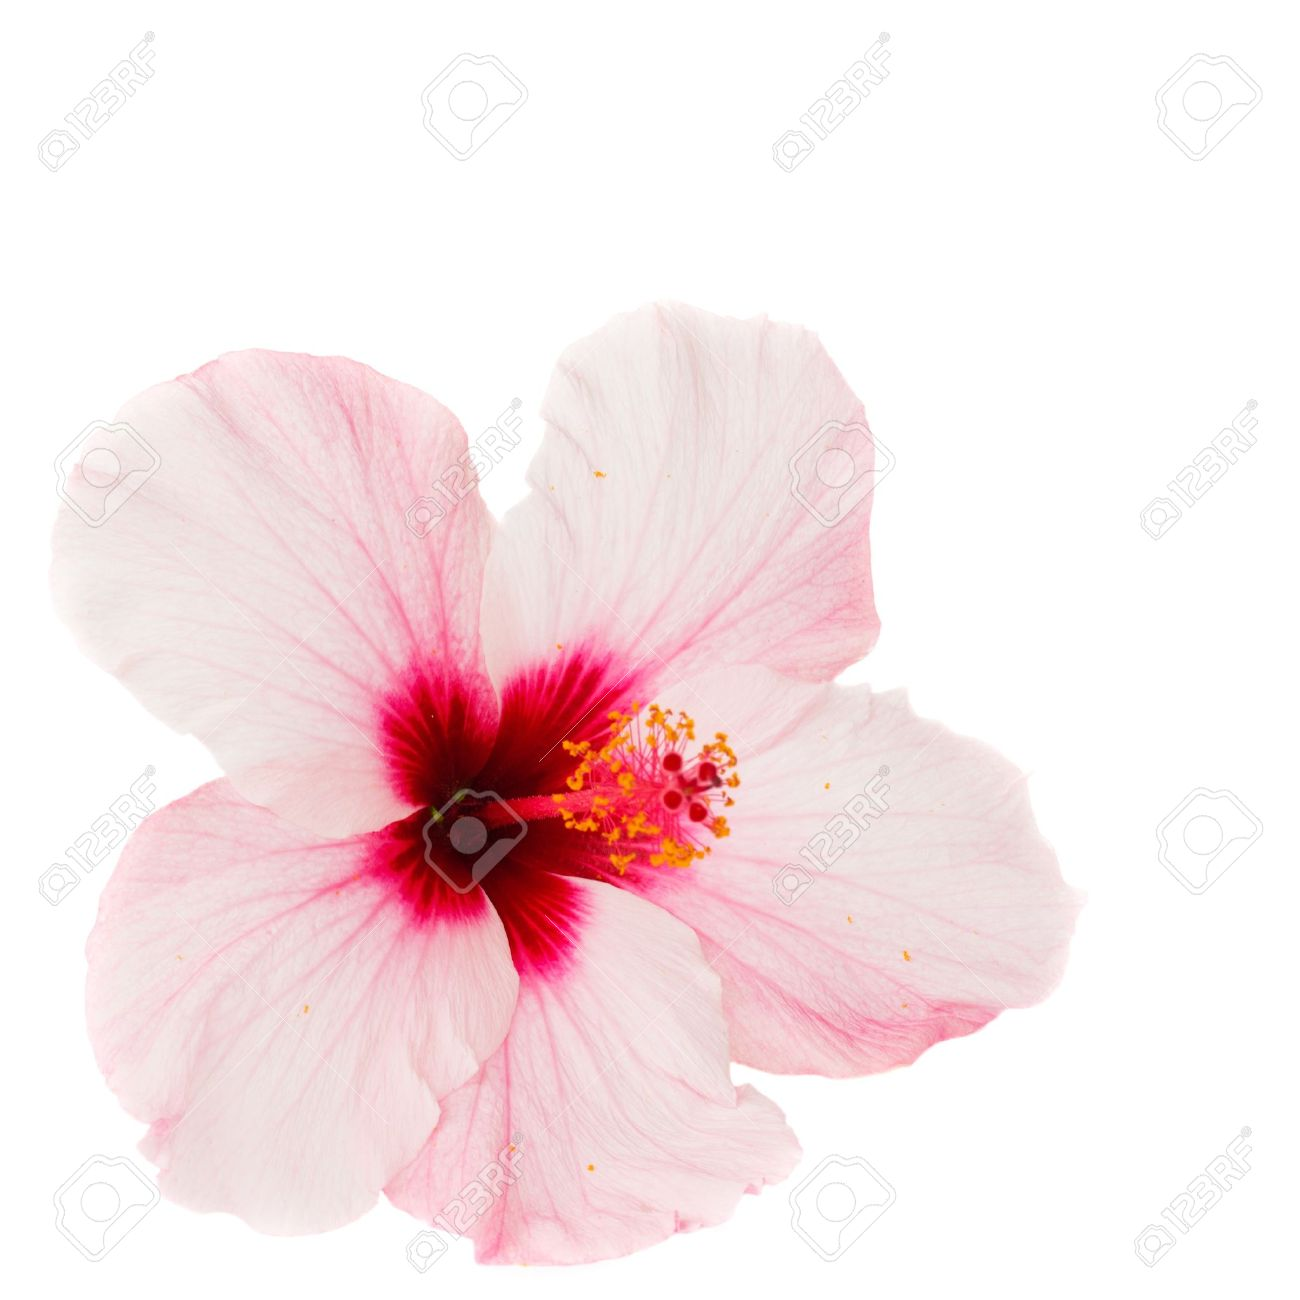 Pink Hibiscus Flower Isolated On White Background Stock Photo